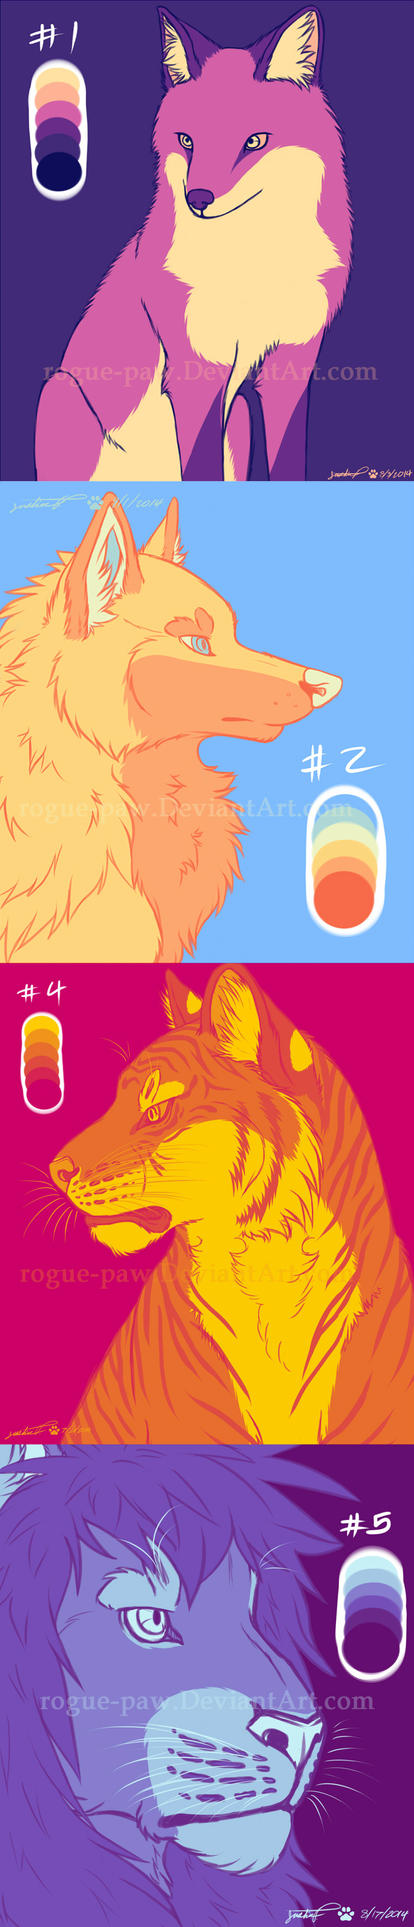 Color Pallet Challenge 1-3, 5 by rogue-paw